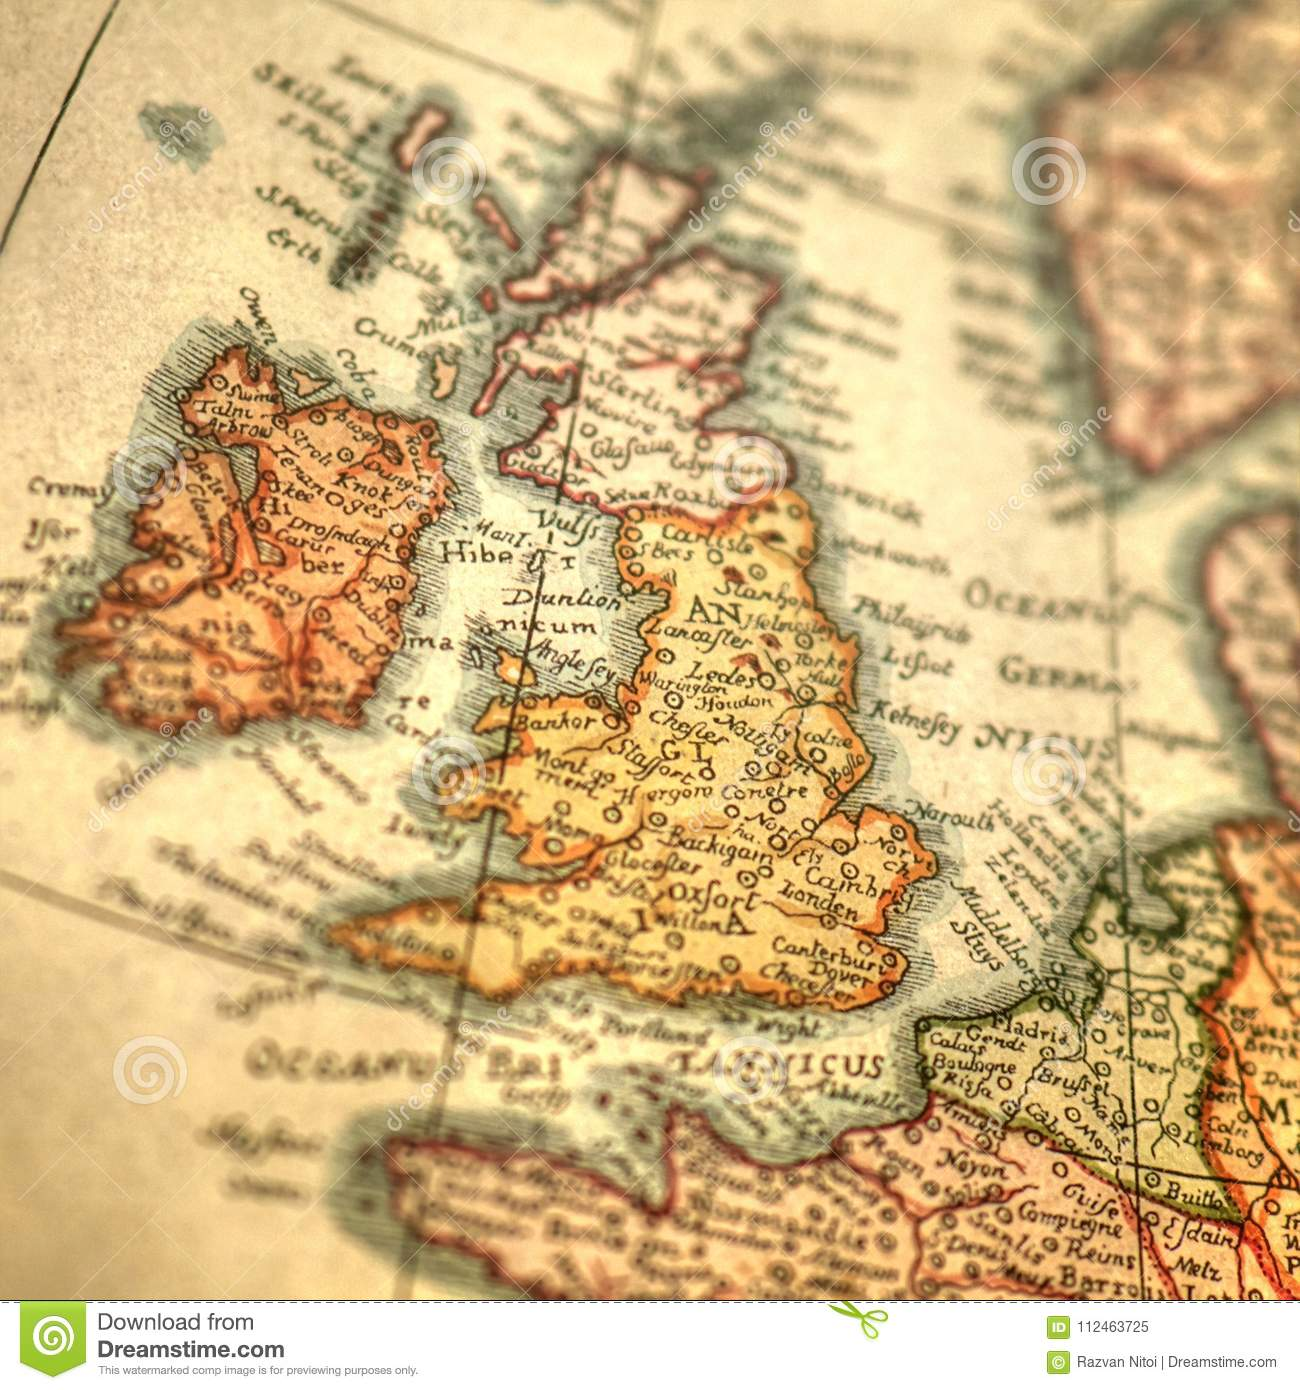 Britain And Ireland Map.Vintage Hand Drawn Map Of Great Britain And Ireland Islands Stock